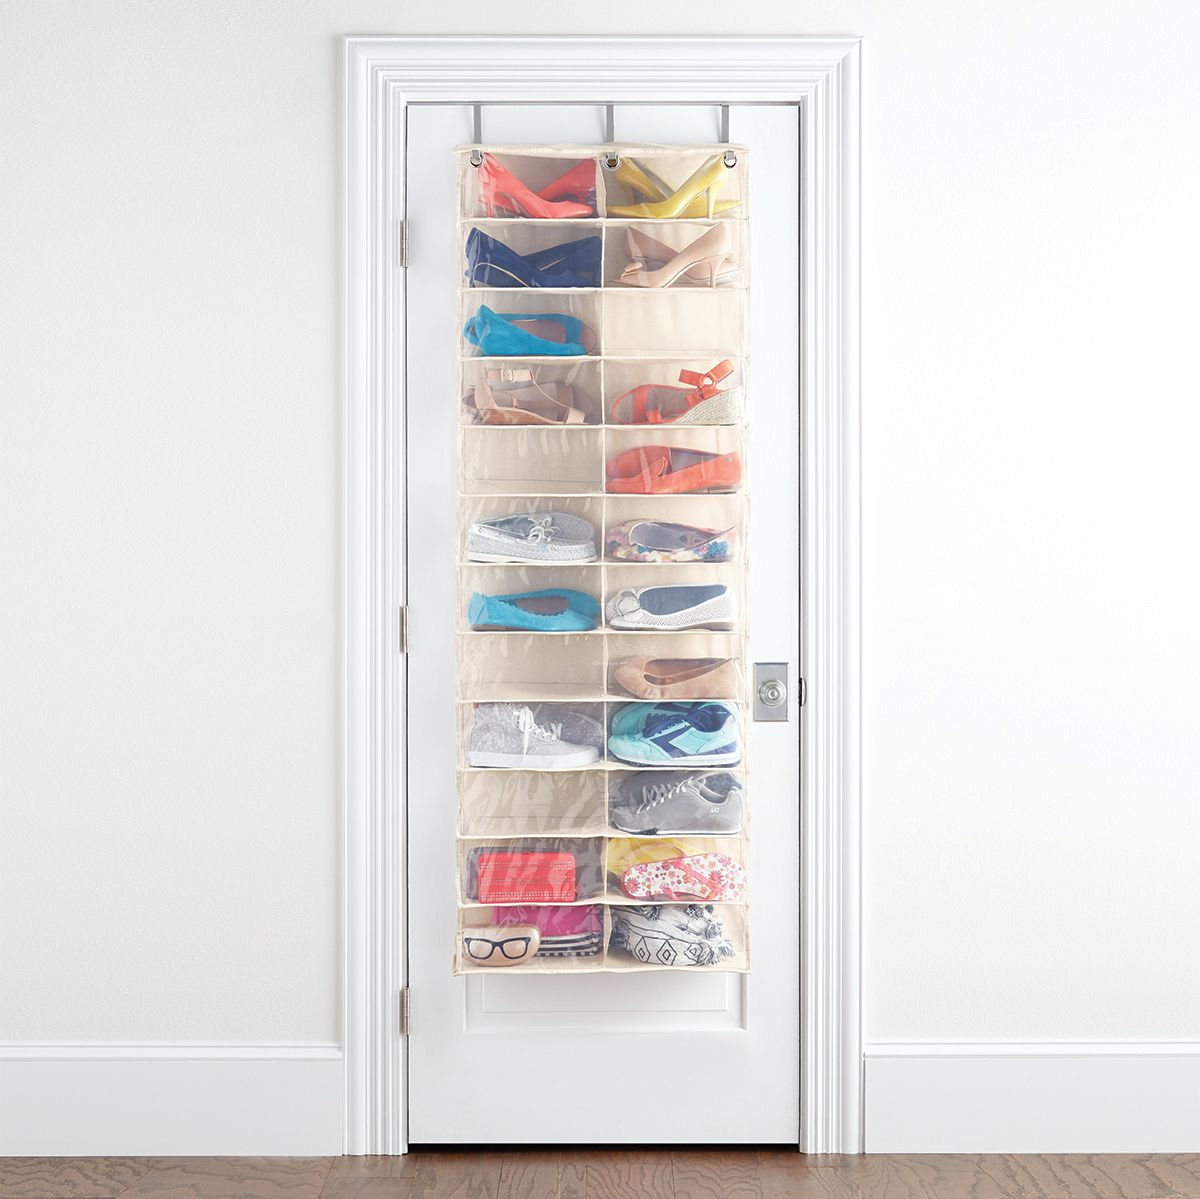 Over The Door Shoe Organizer 24 Pocket Container